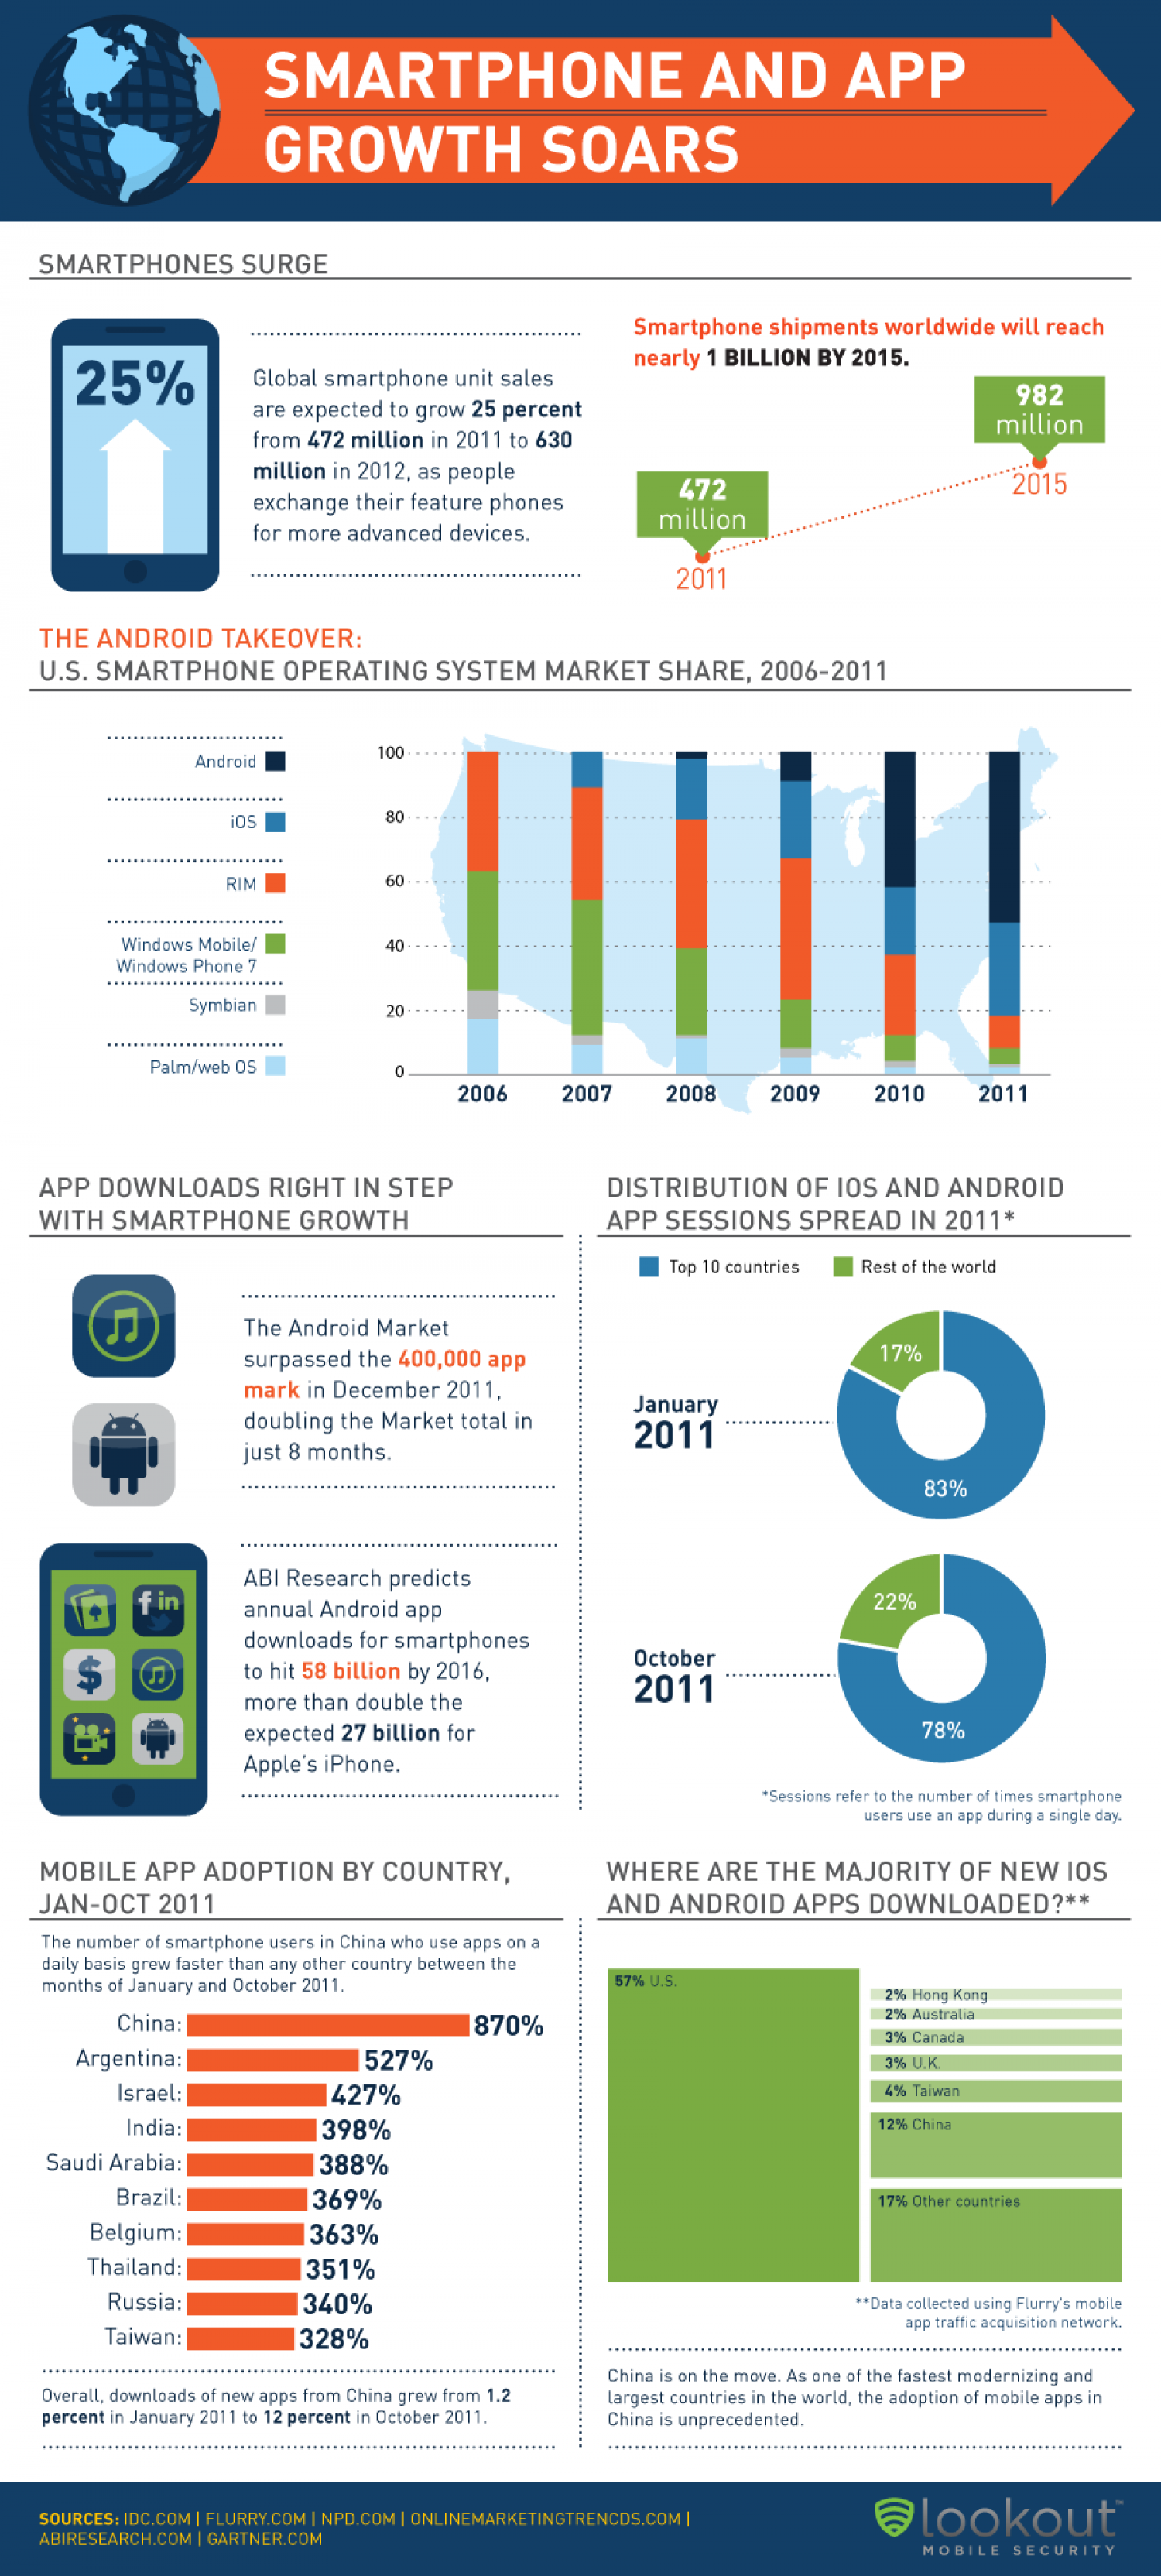 Smartphone and APP Growth Soars Infographic